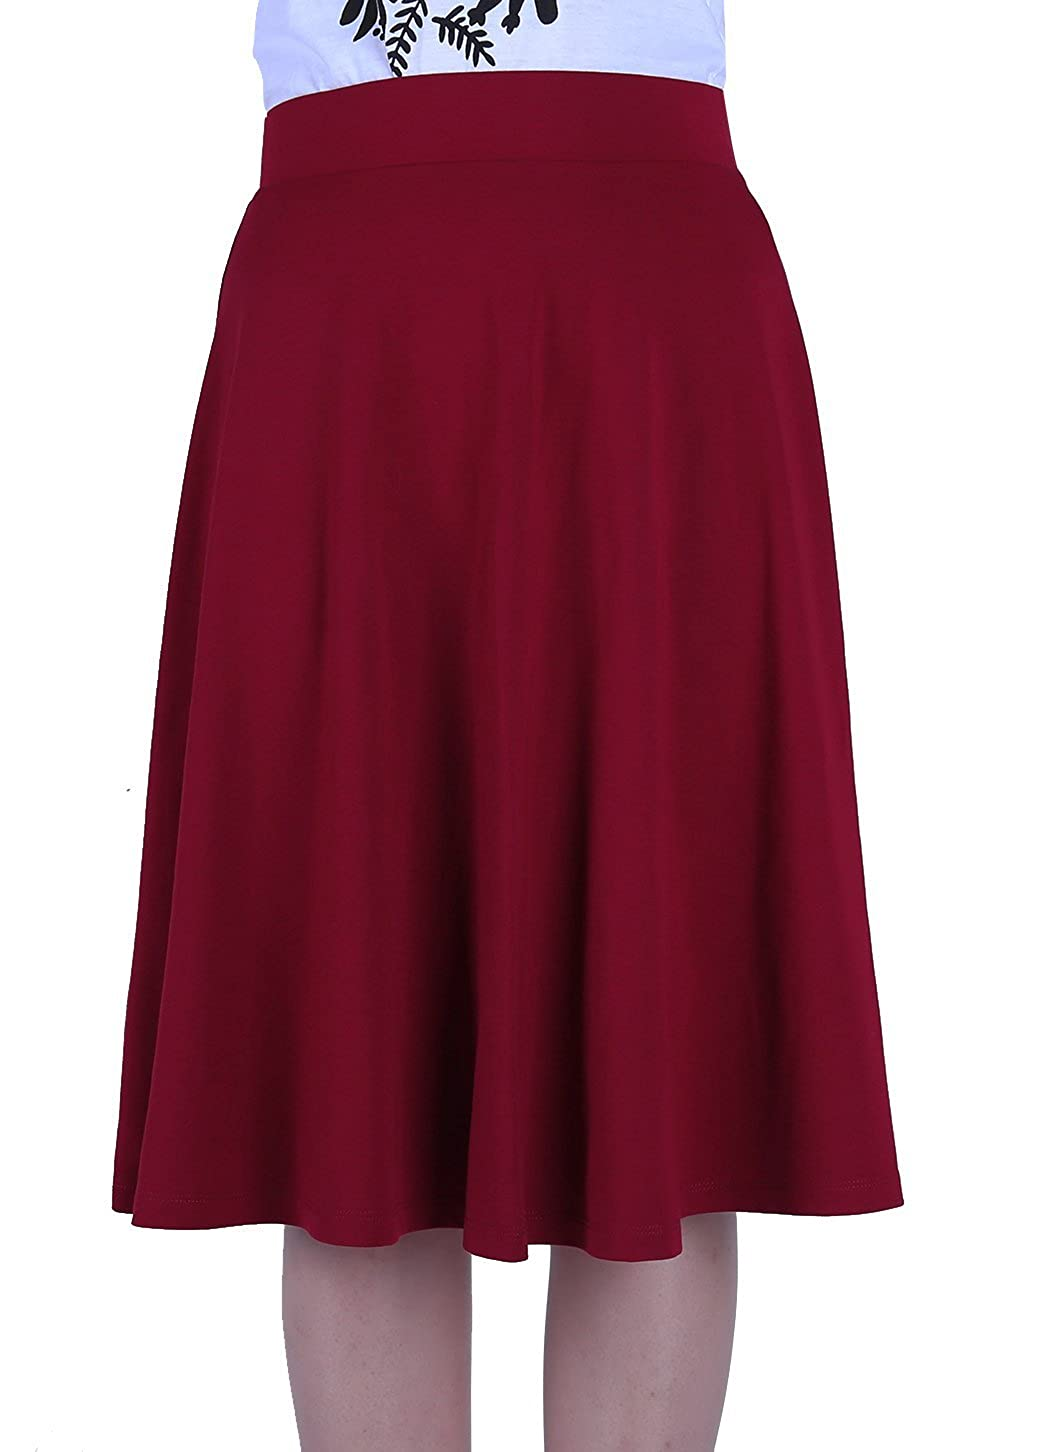 c7d573139 Fabric:a little thick Waist Type:High Waist With Elastic Waistband  Silhouette:Skater Skirt Length:Knee Length It is so incredibly comfortable  ...